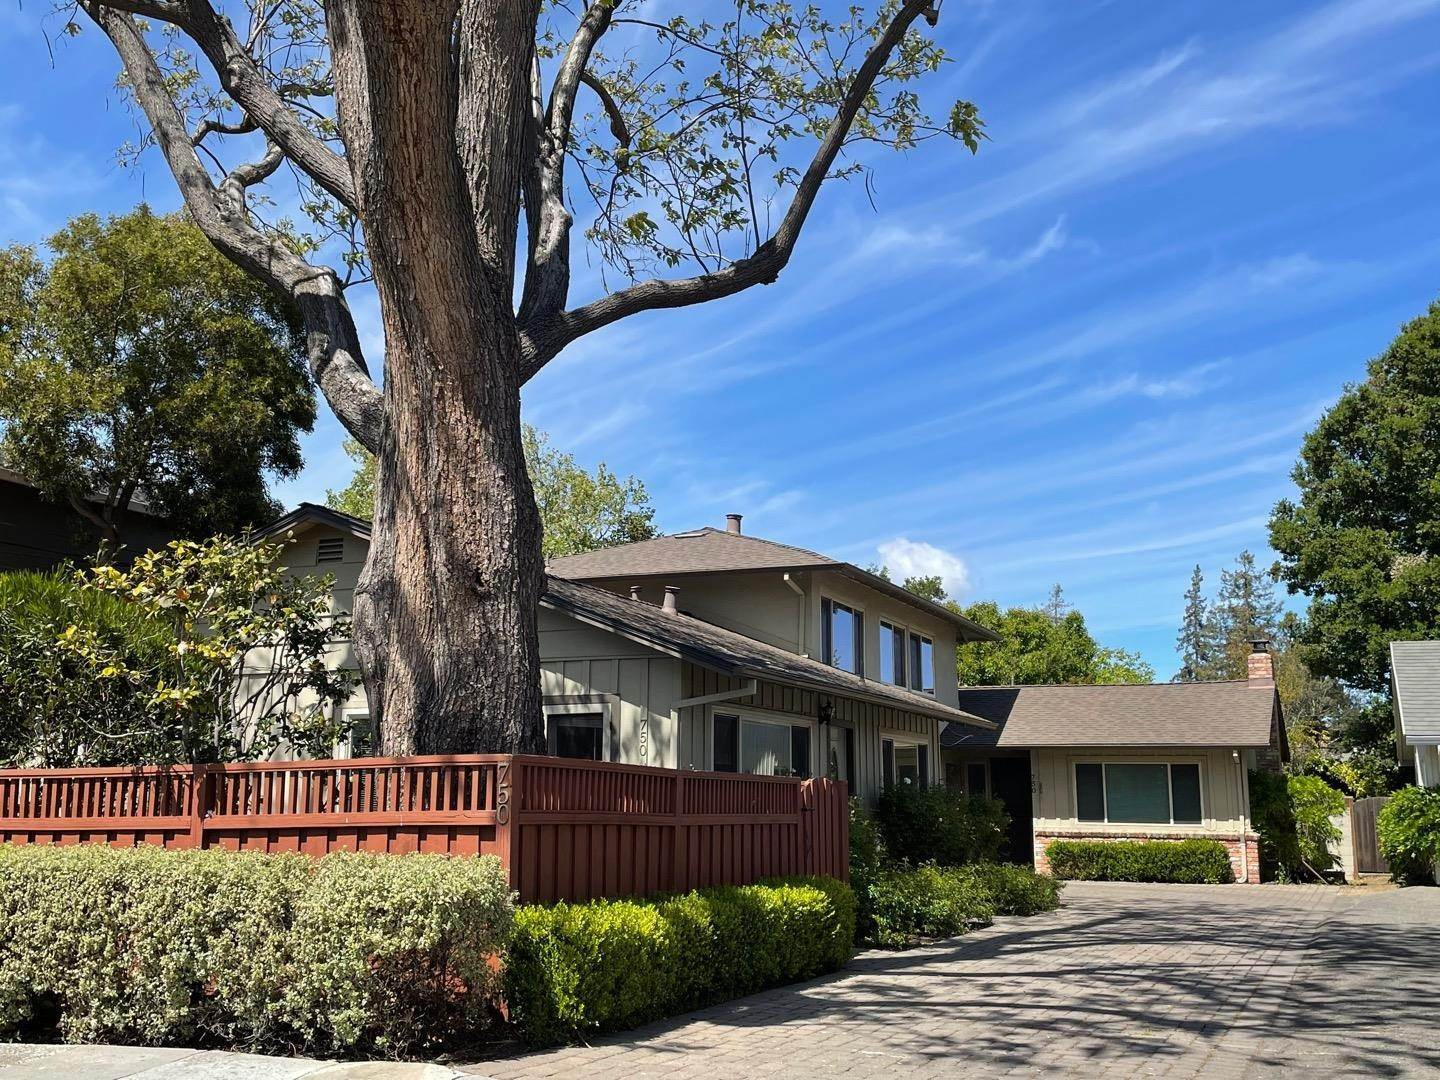 Multi-Family Homes for Sale at 750 Arbor Road Menlo Park, California 94025 United States